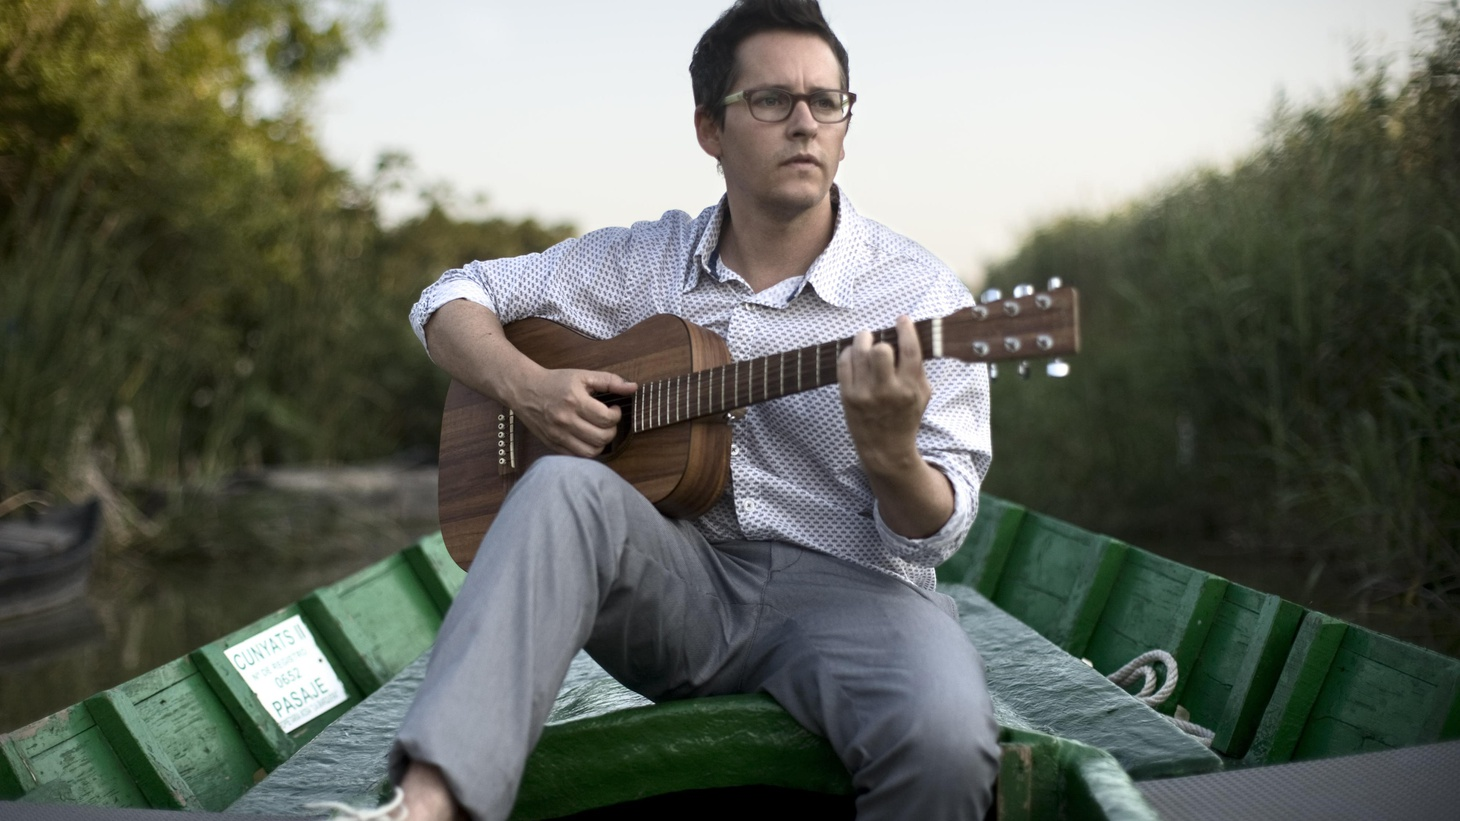 Josh Rouse's perfectly crafted pop songs get a Latin twist on his new album. Enjoy a globe-trotting musical journey when Josh Rouse performs live onMorning Becomes Eclecticat 11:15am.